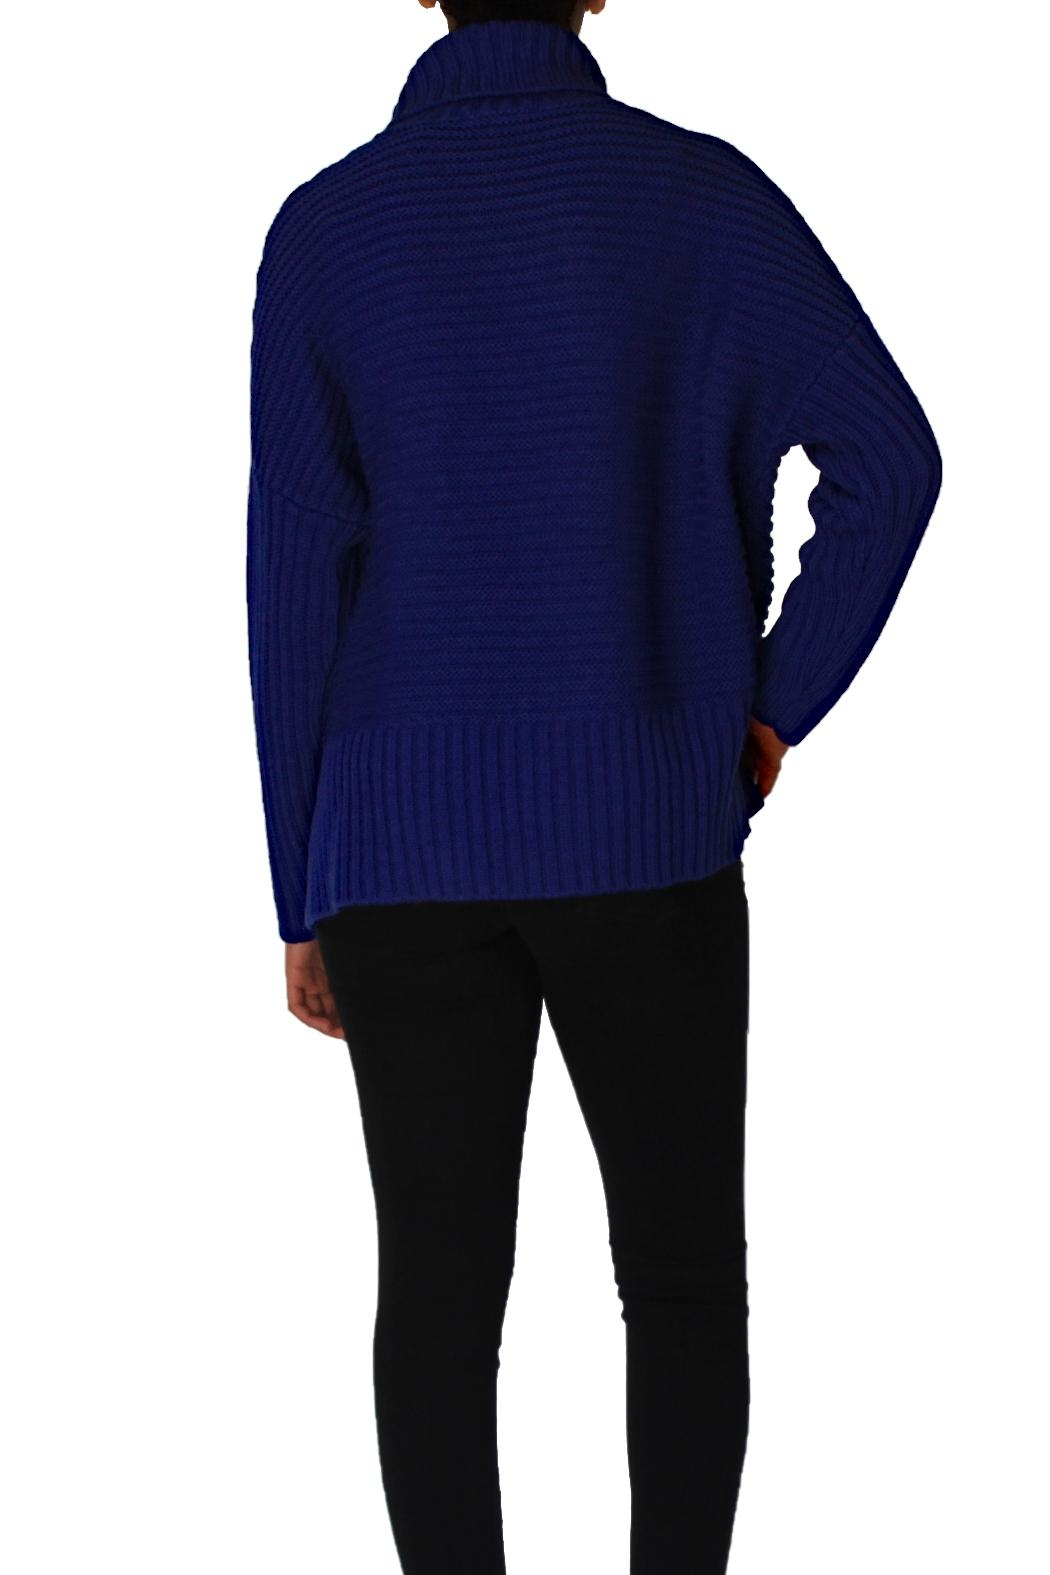 Chelsea & Theodore Turtleneck Dolman Sleeve Sweater - Front Full Image